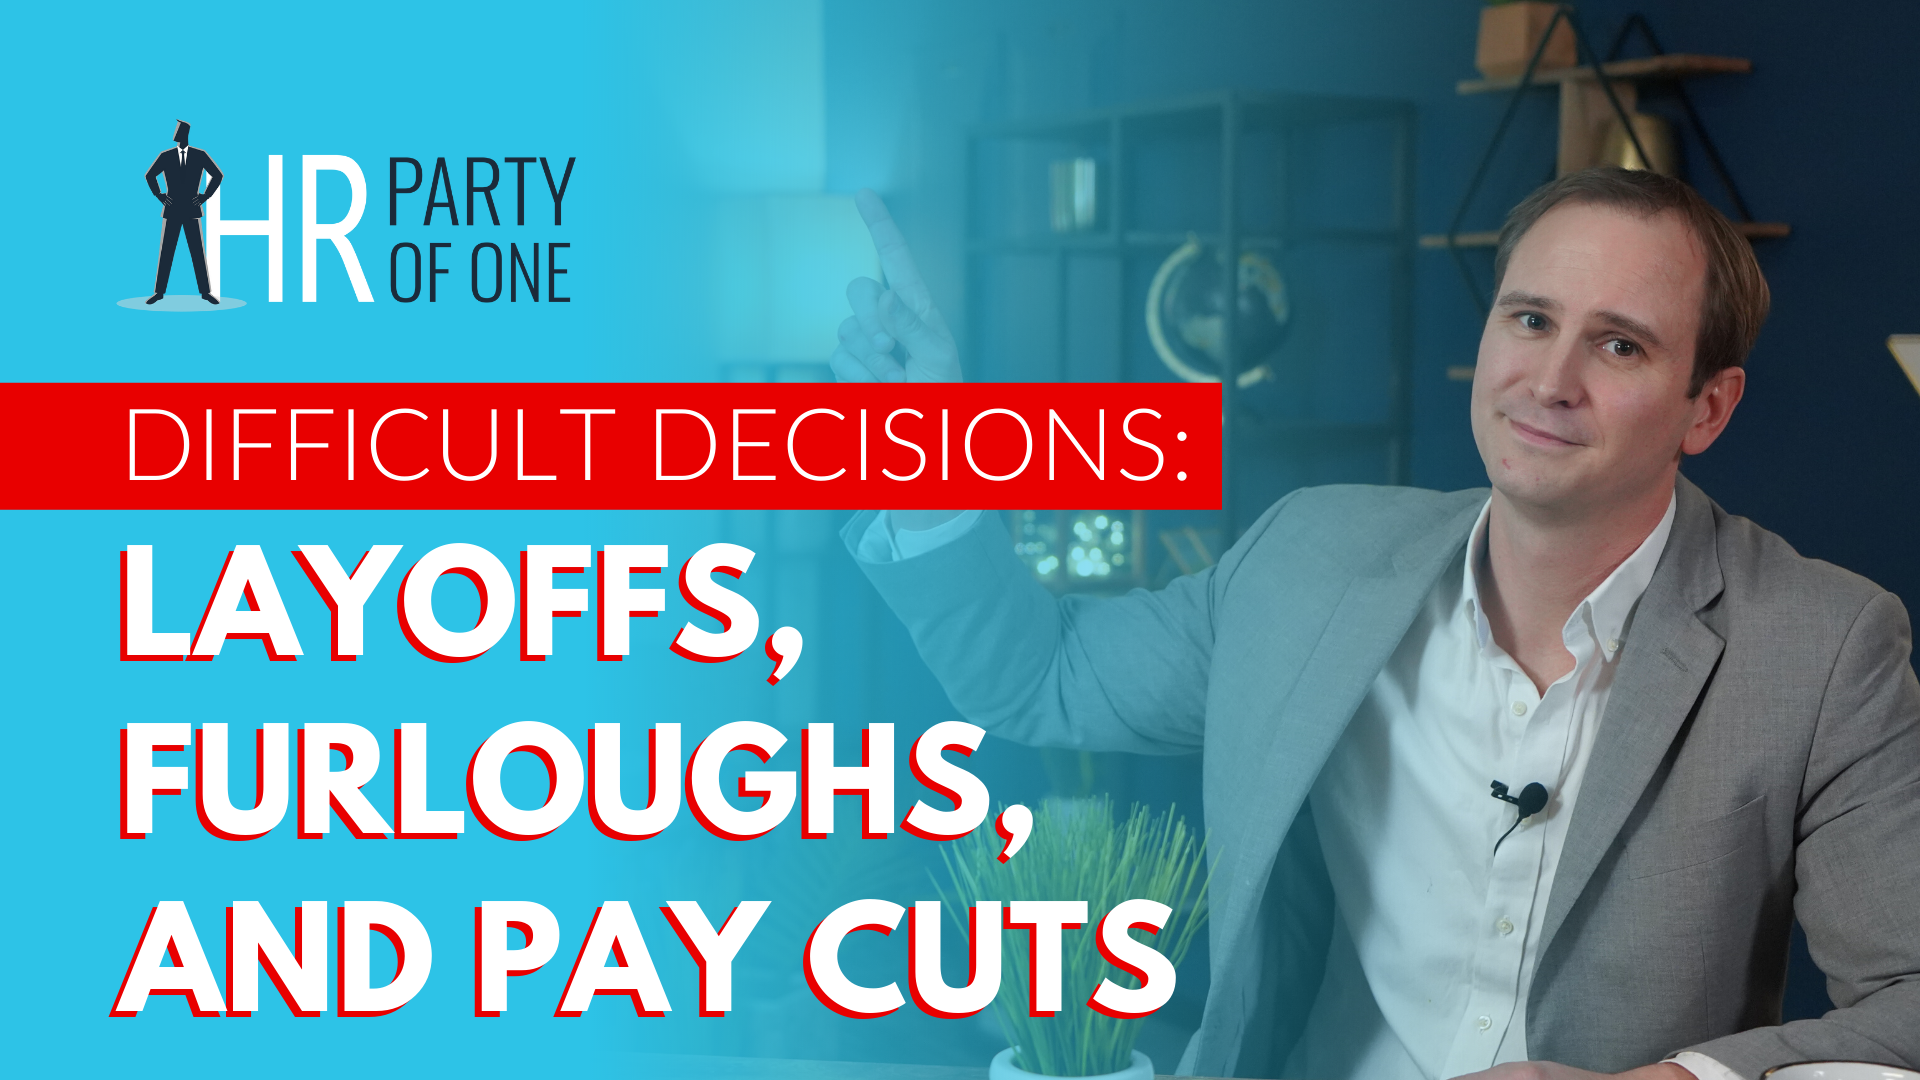 Difficult Decisions: How to Implement a Fair Pay Cut